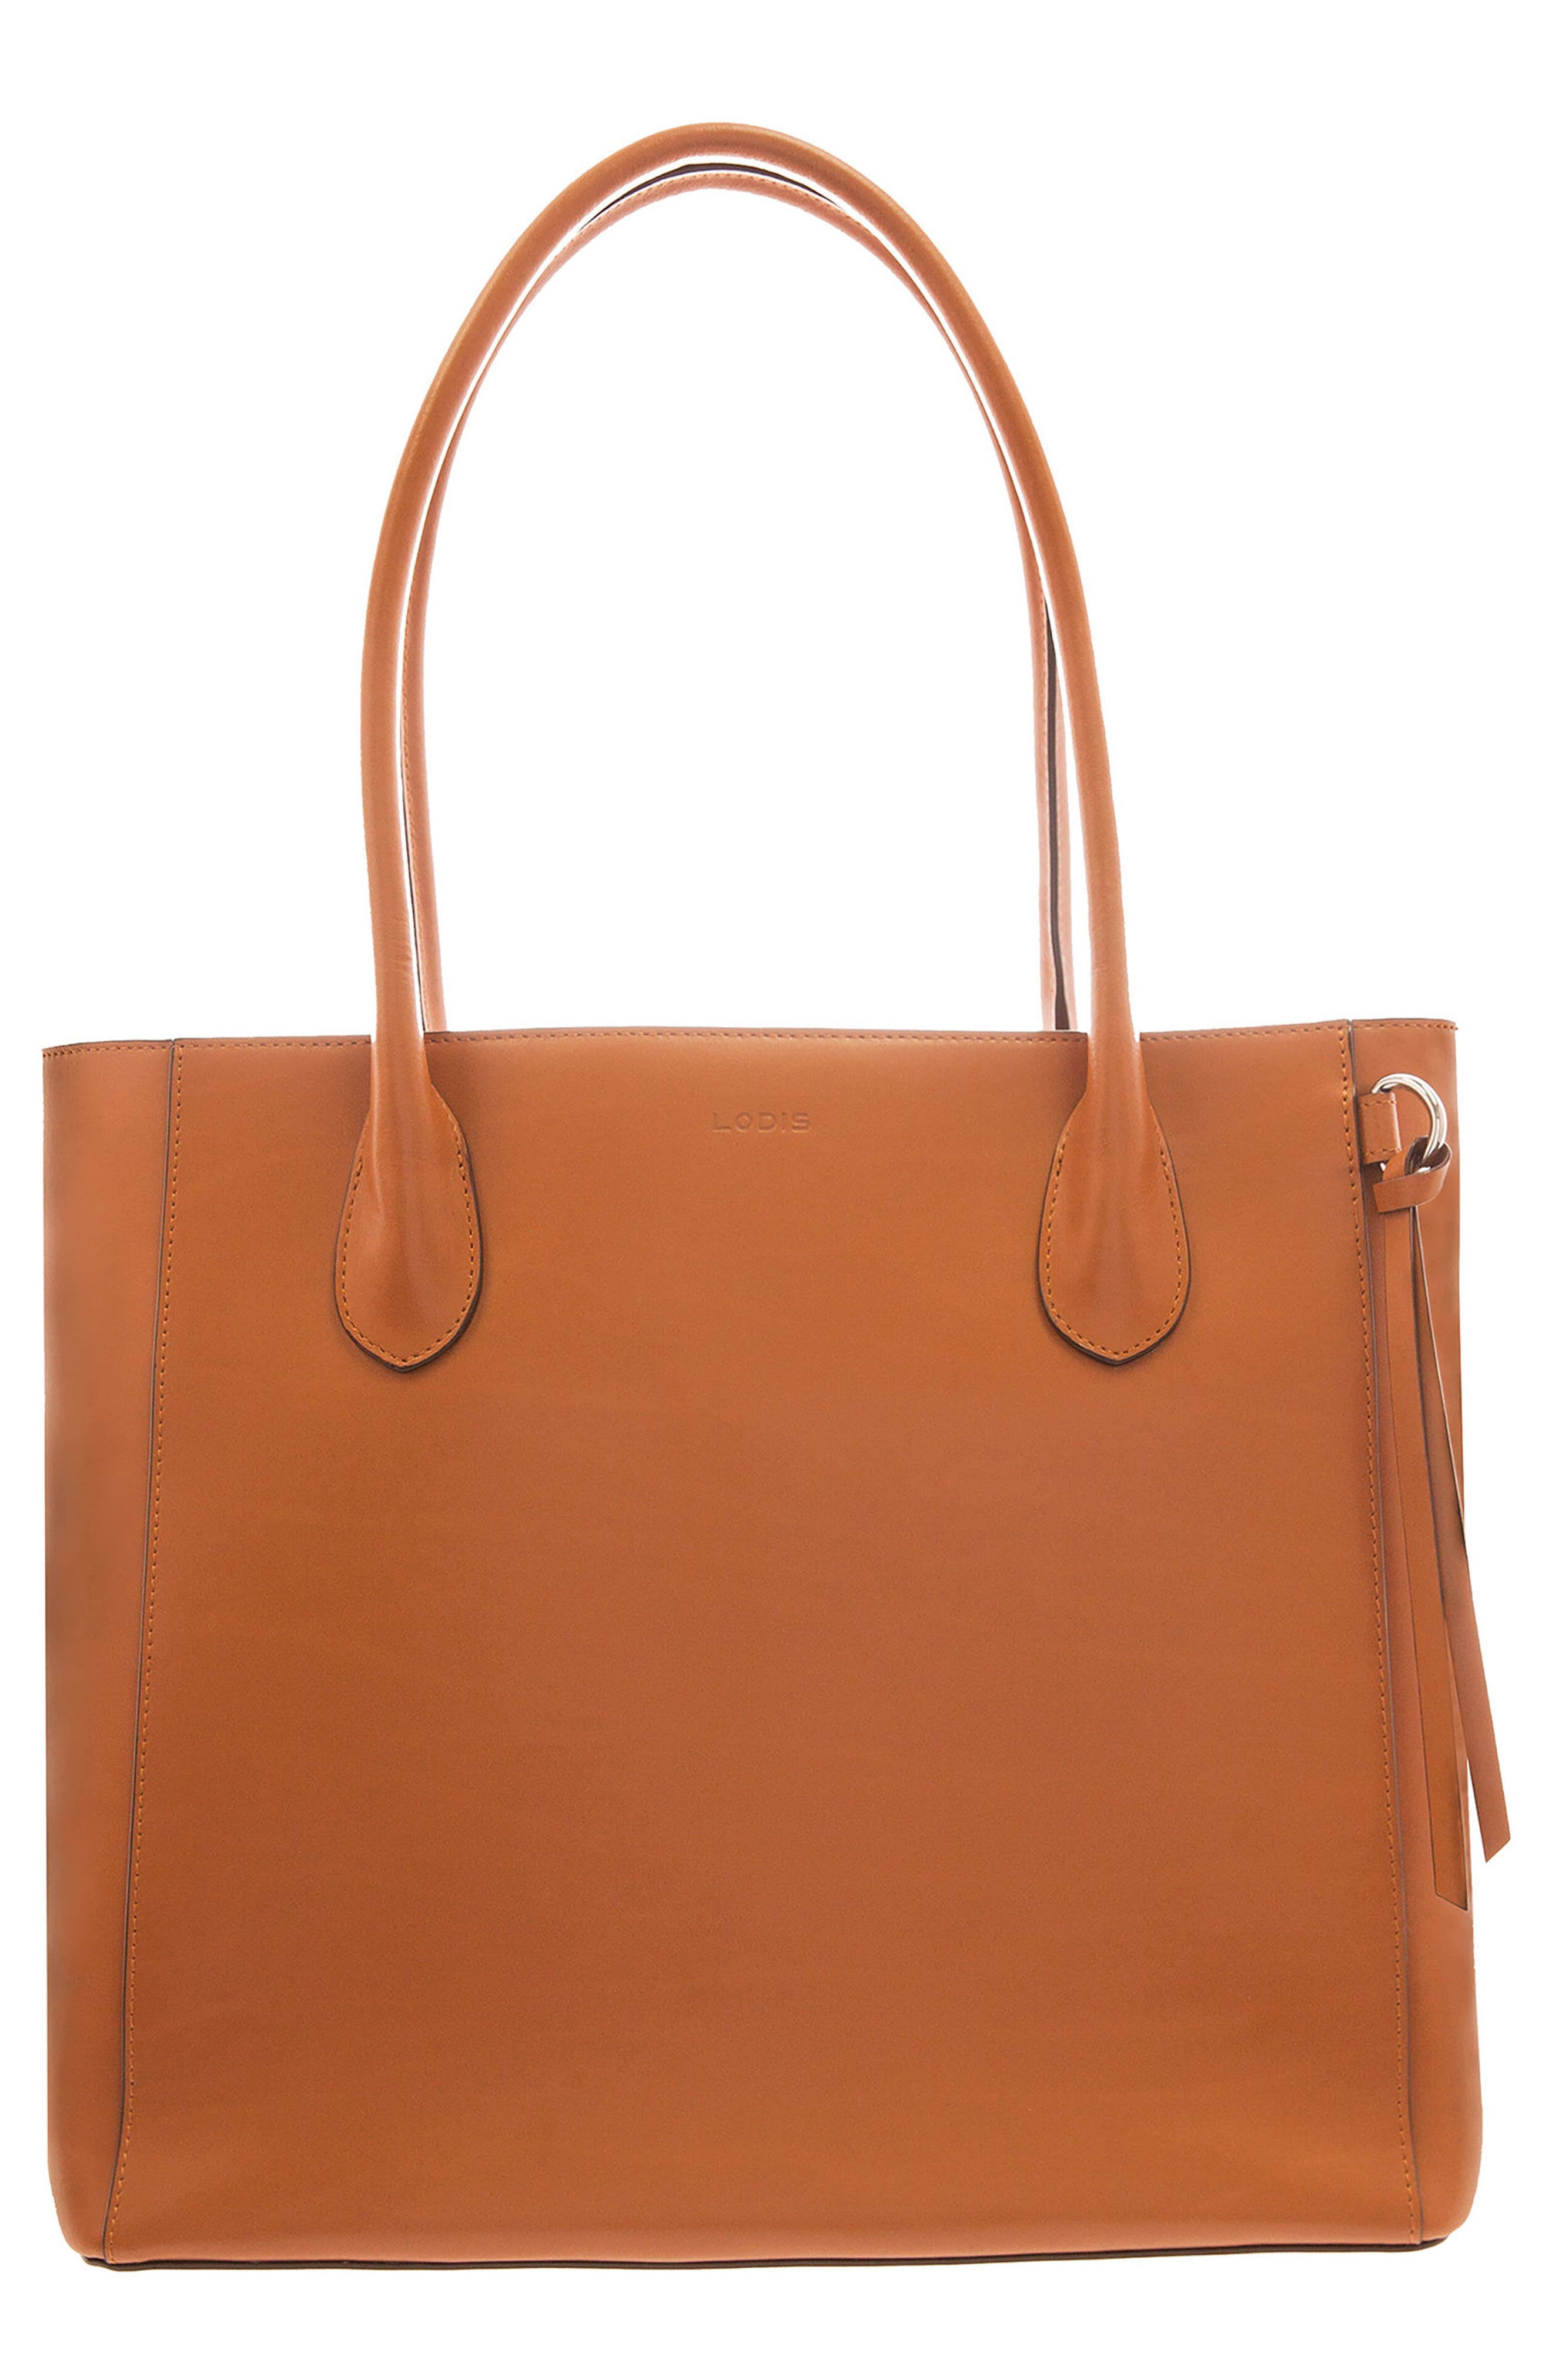 Cecily RFID Leather Tote,                         Main,                         color, Toffee